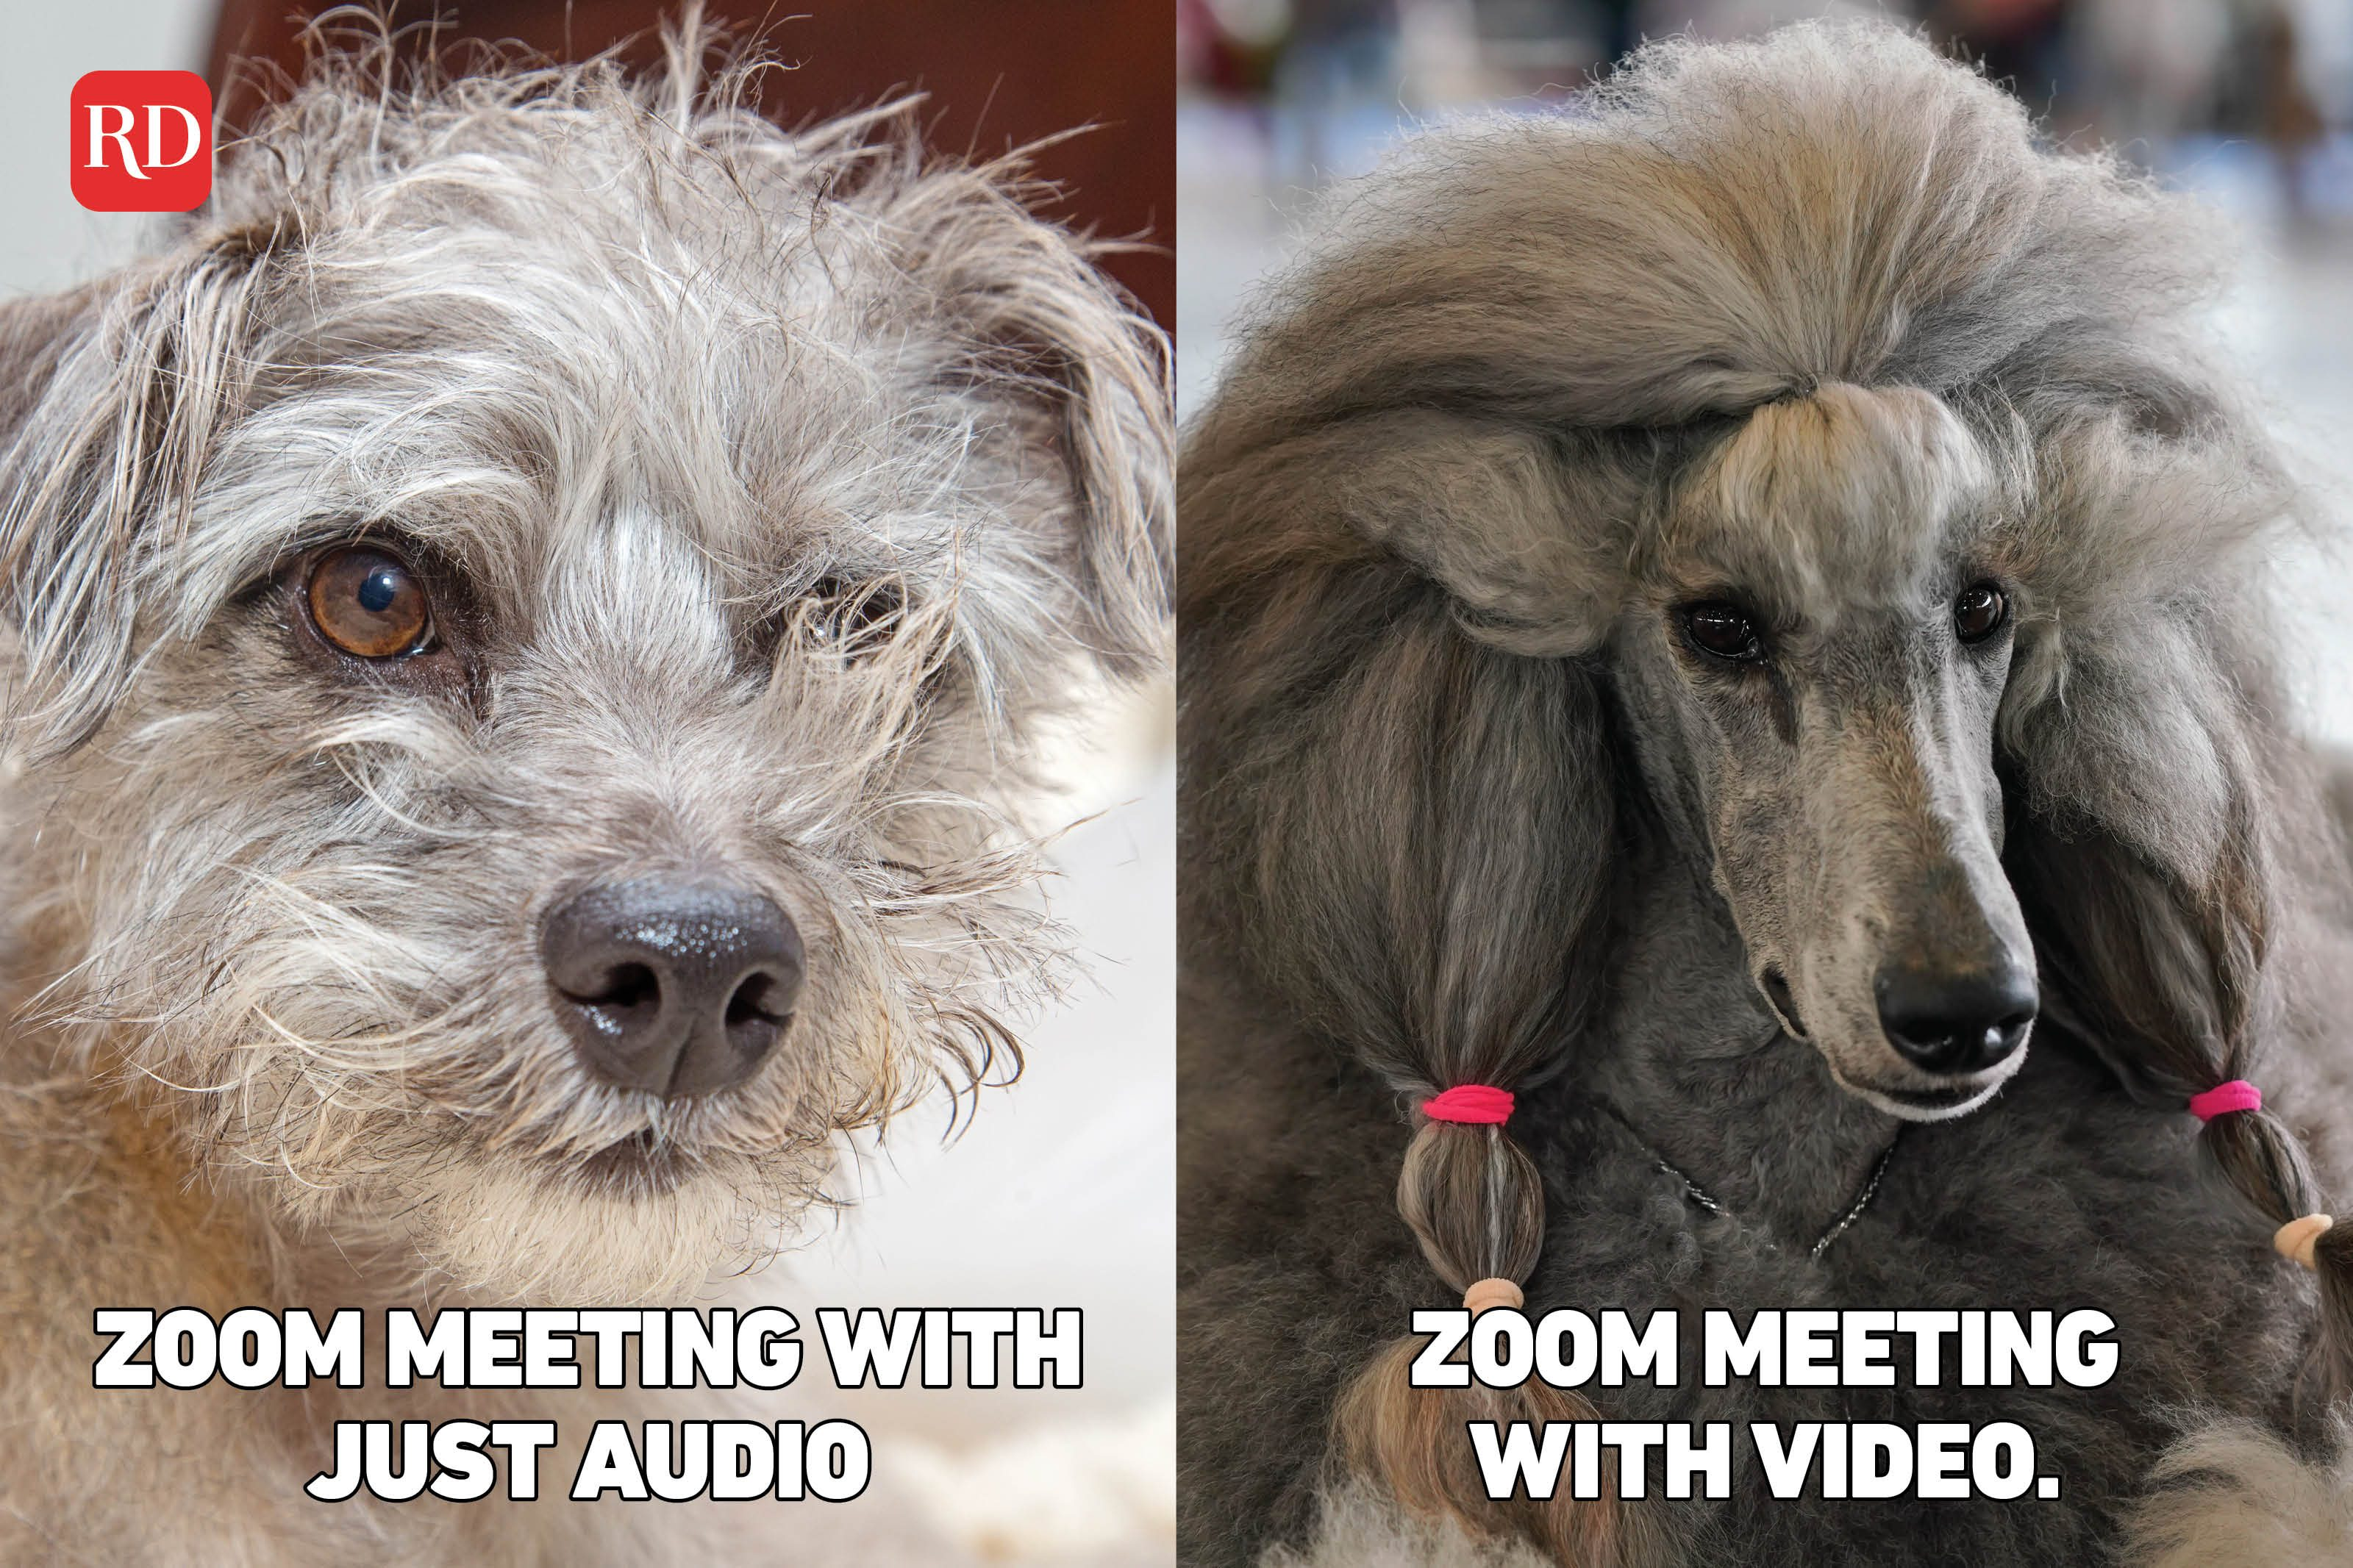 Two images with meme text over images of dogs